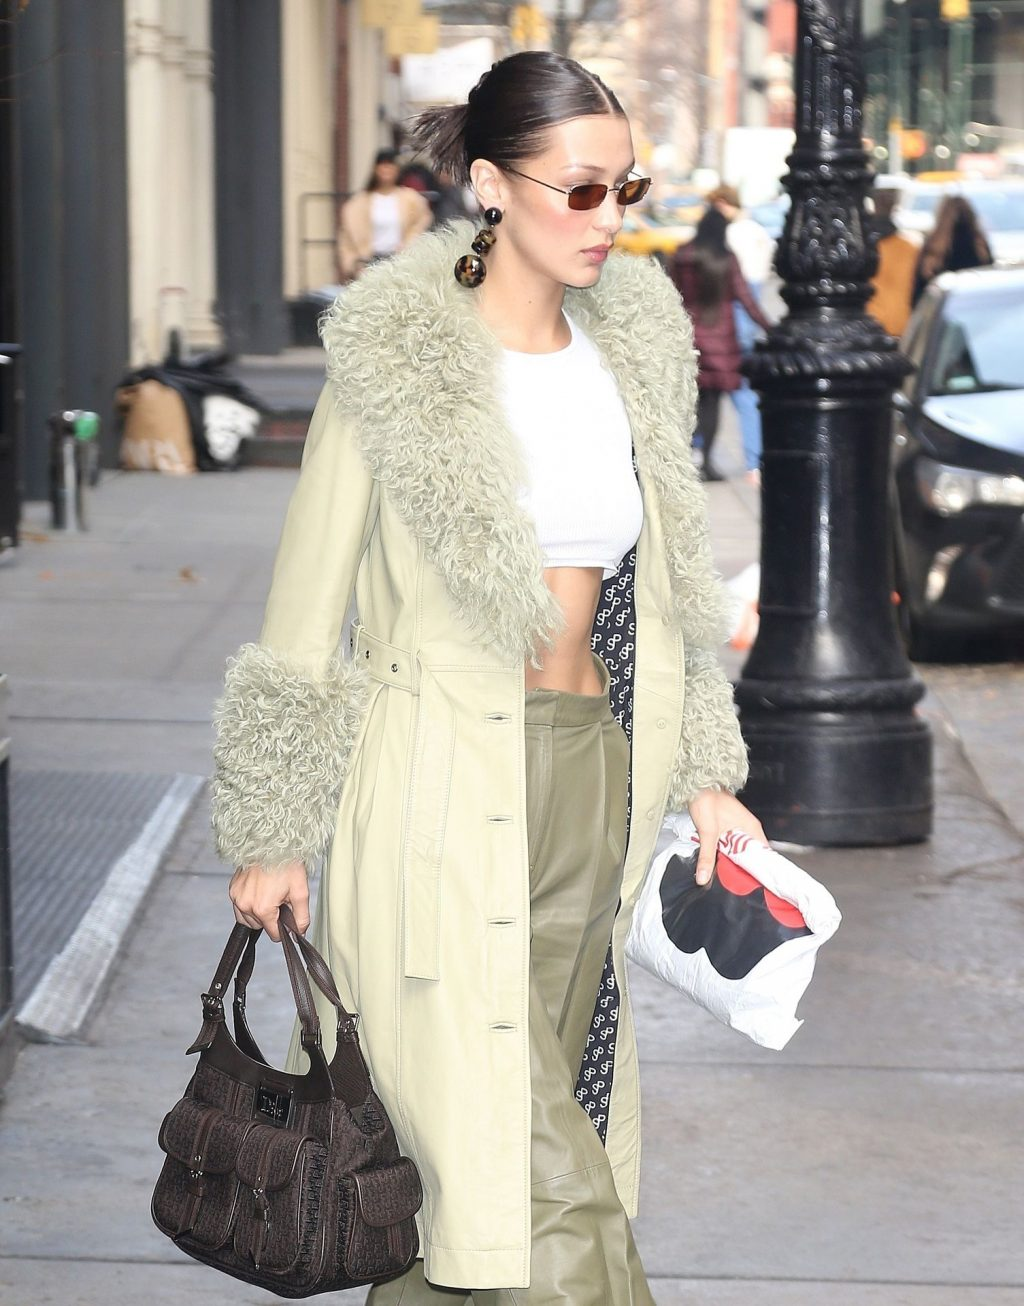 Bella Hadid See through The Fappening Blog 37 1024x1306 - Braless Bella Hadid Arrives at the Park Avenue Armory for the Marc Jacobs Fashion Show (59 Photos)